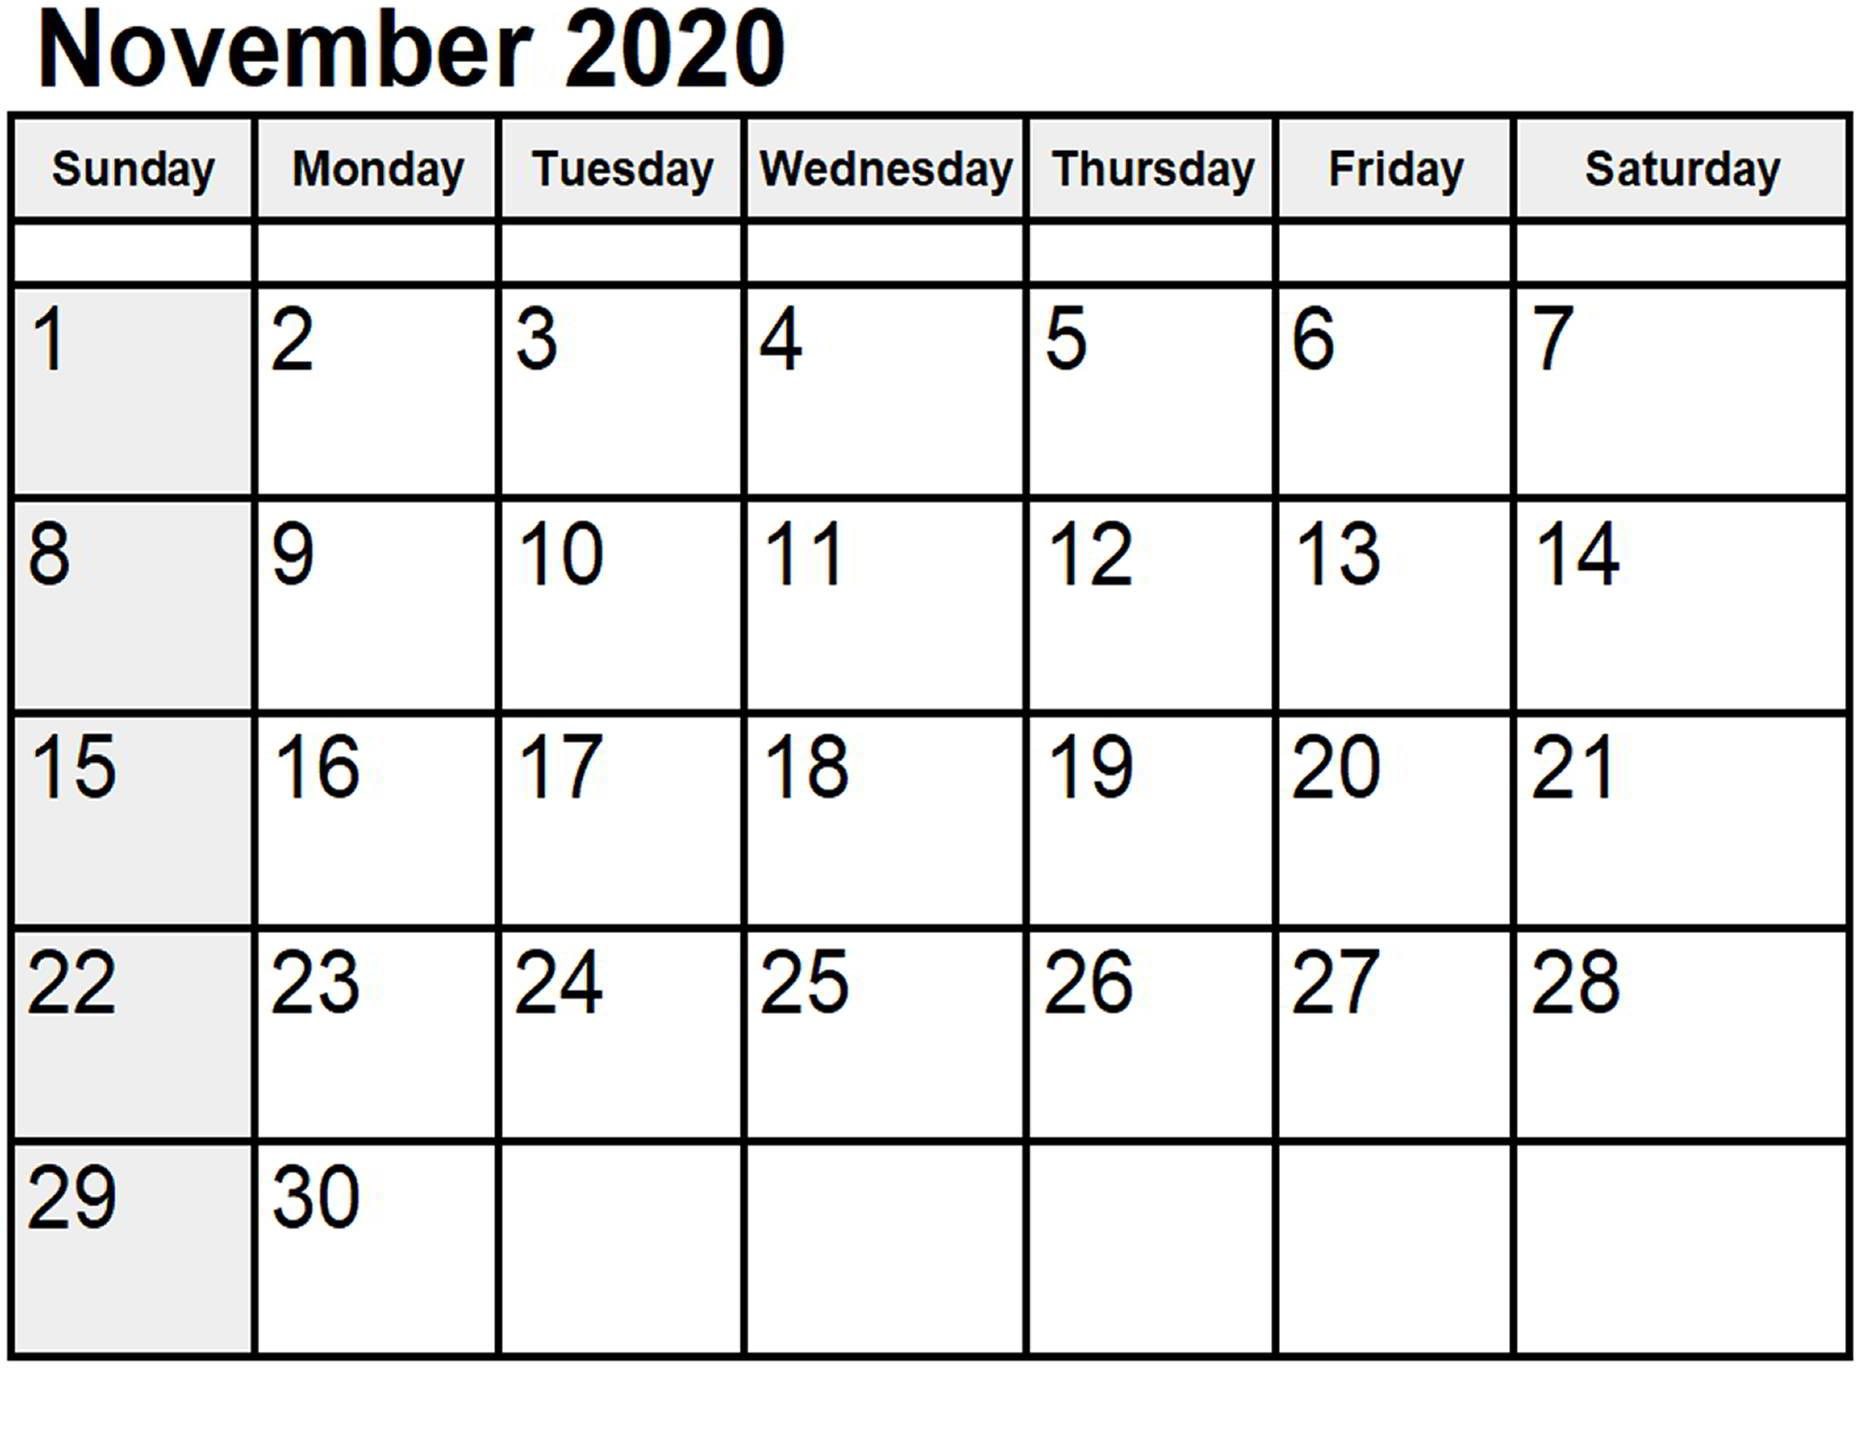 November Calendar 2020 Excel downlaod